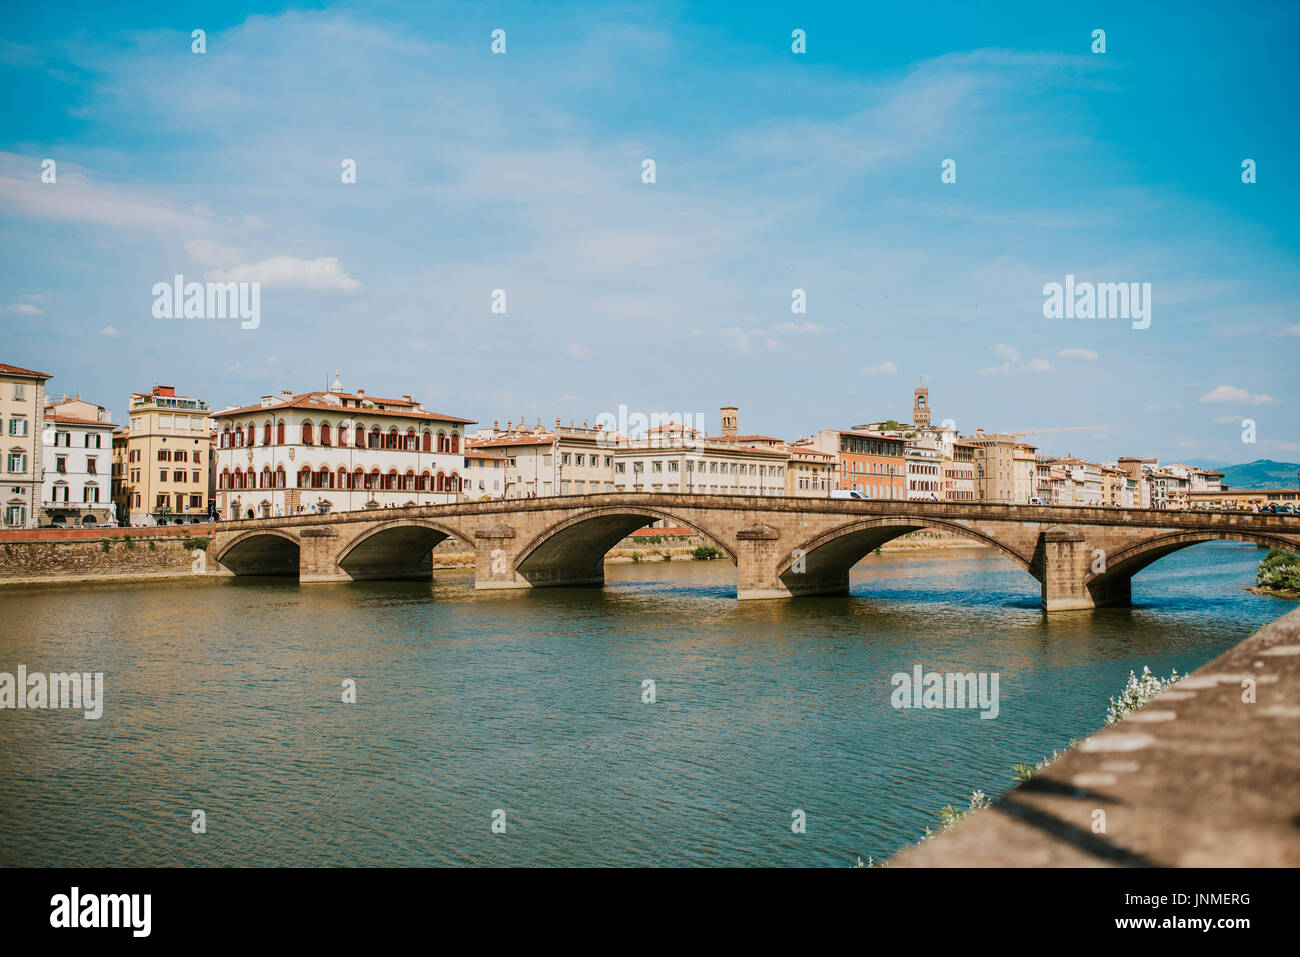 Beautif city of Florence, Italy - Stock Image